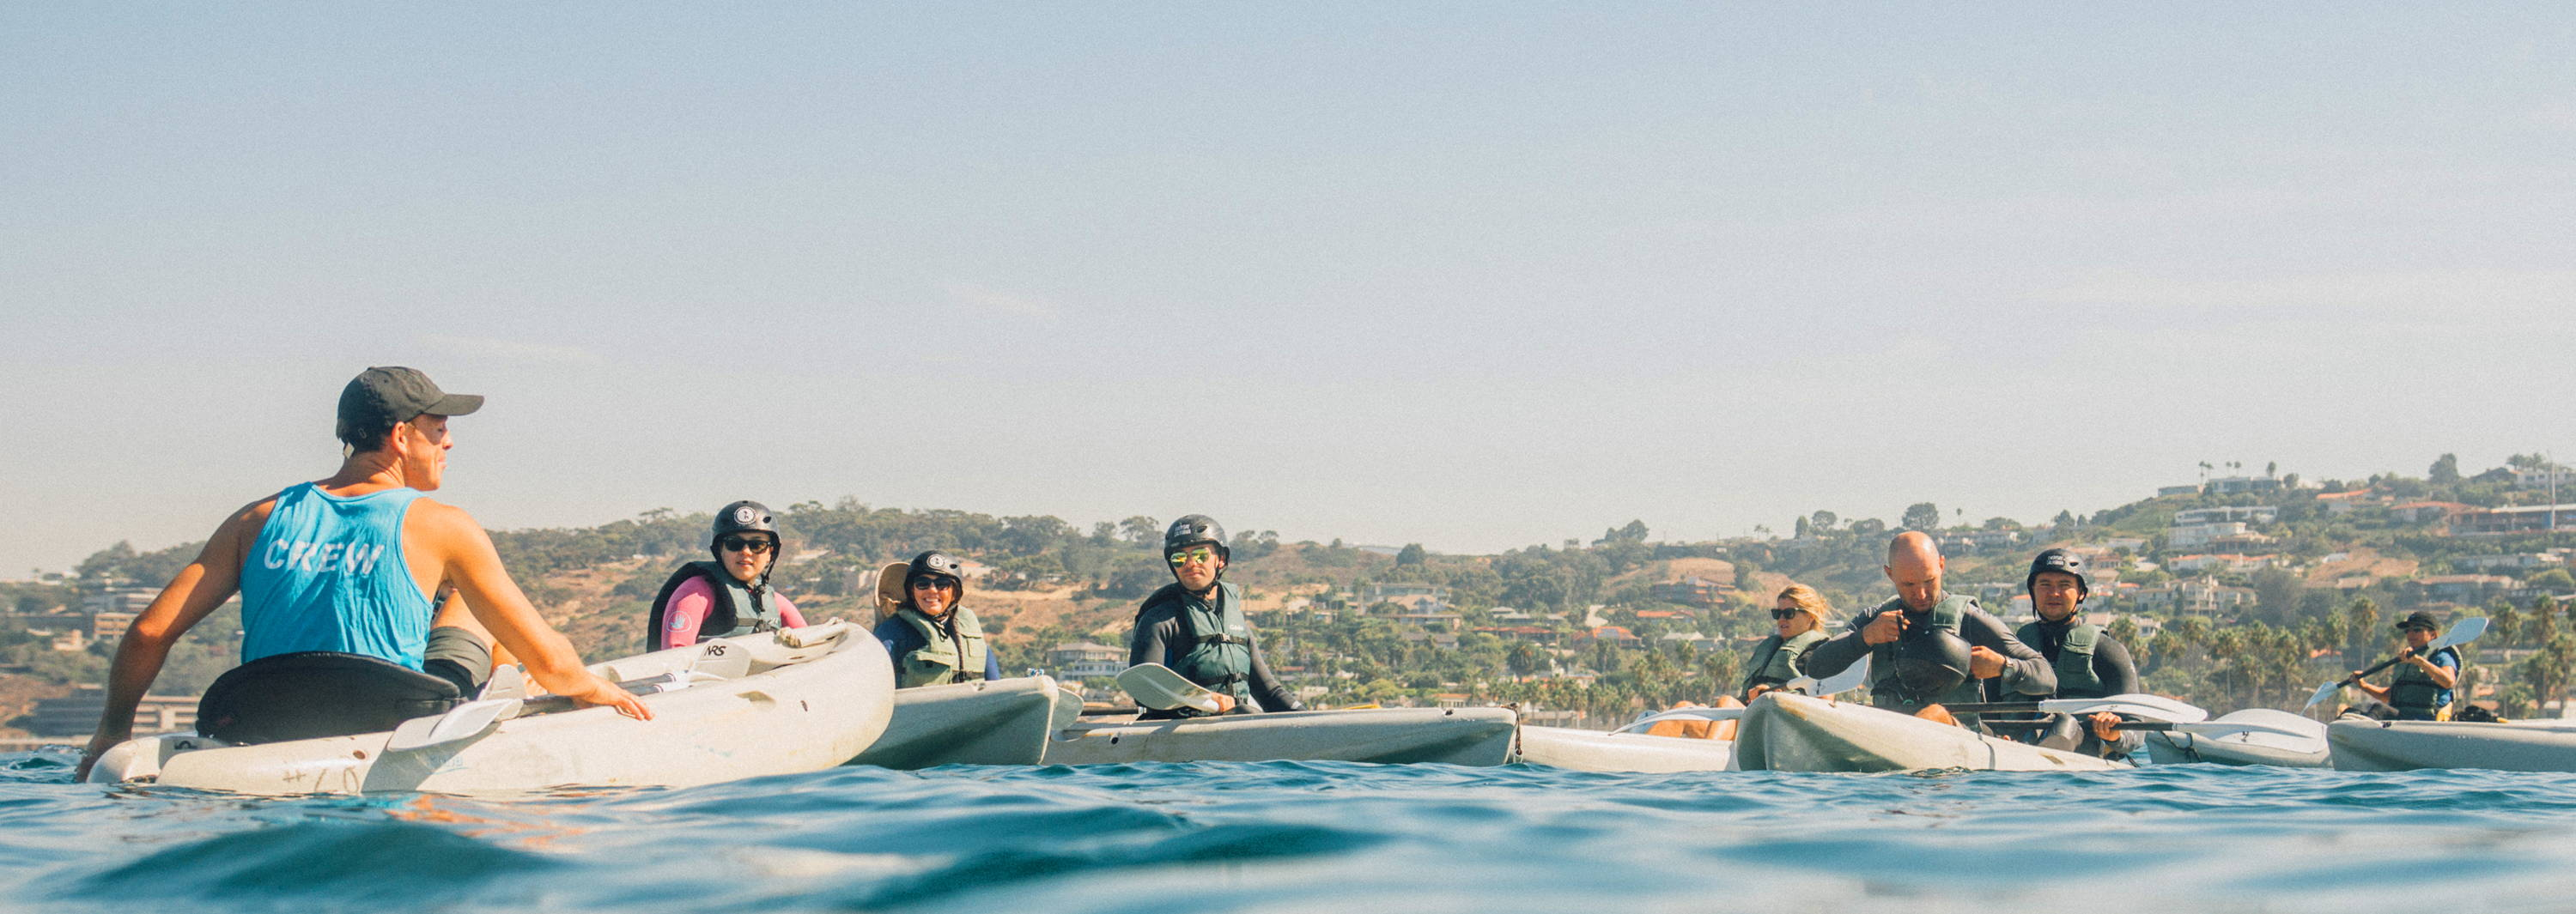 San Diego kayaking for beginners